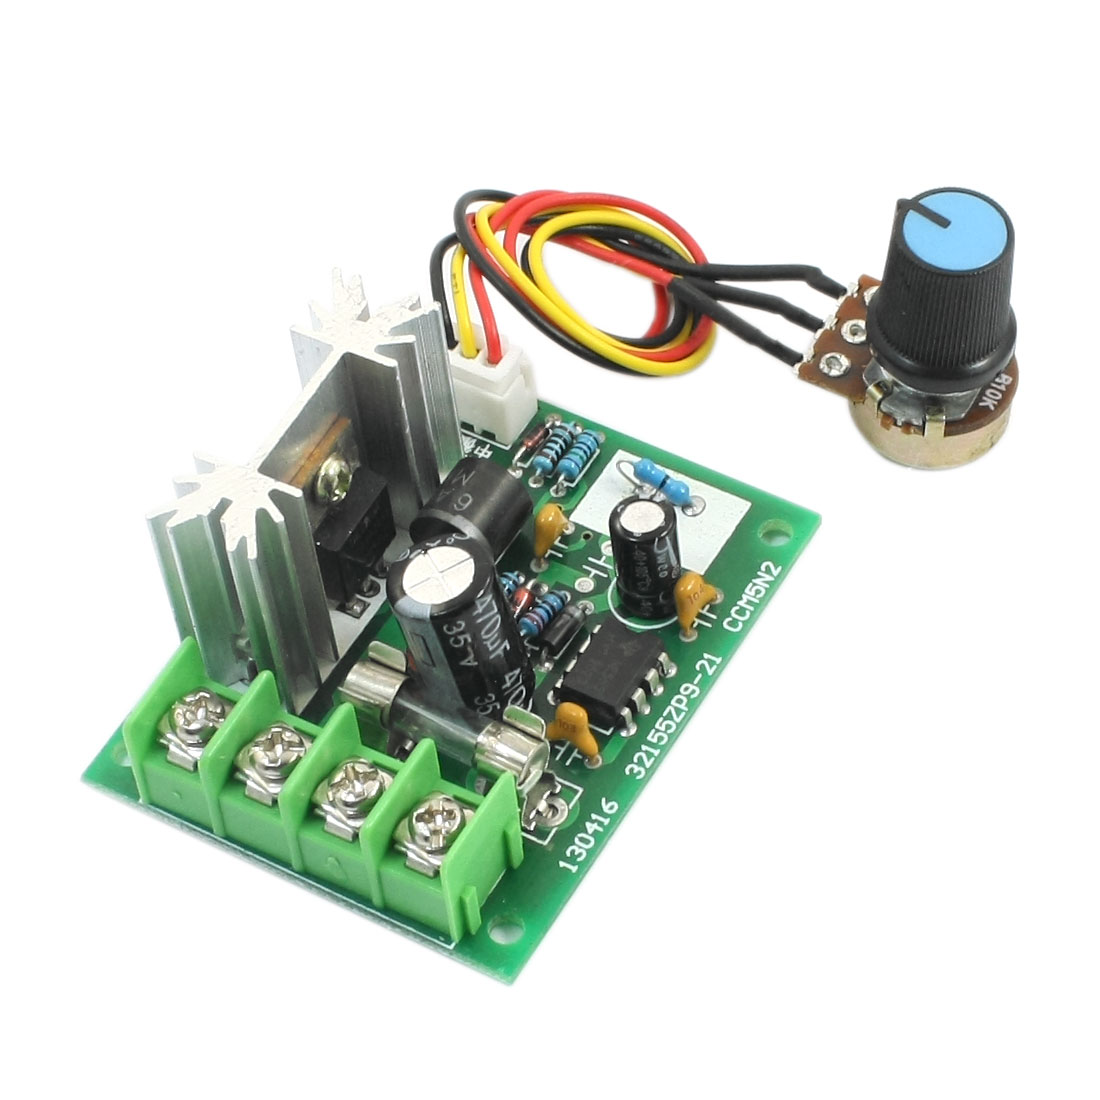 DC 5-16V 200W Pulse Width Modulation Rotary Adjustable Potentiometer Knob PWM Motor Speed Controller Switch Governor Module 8""